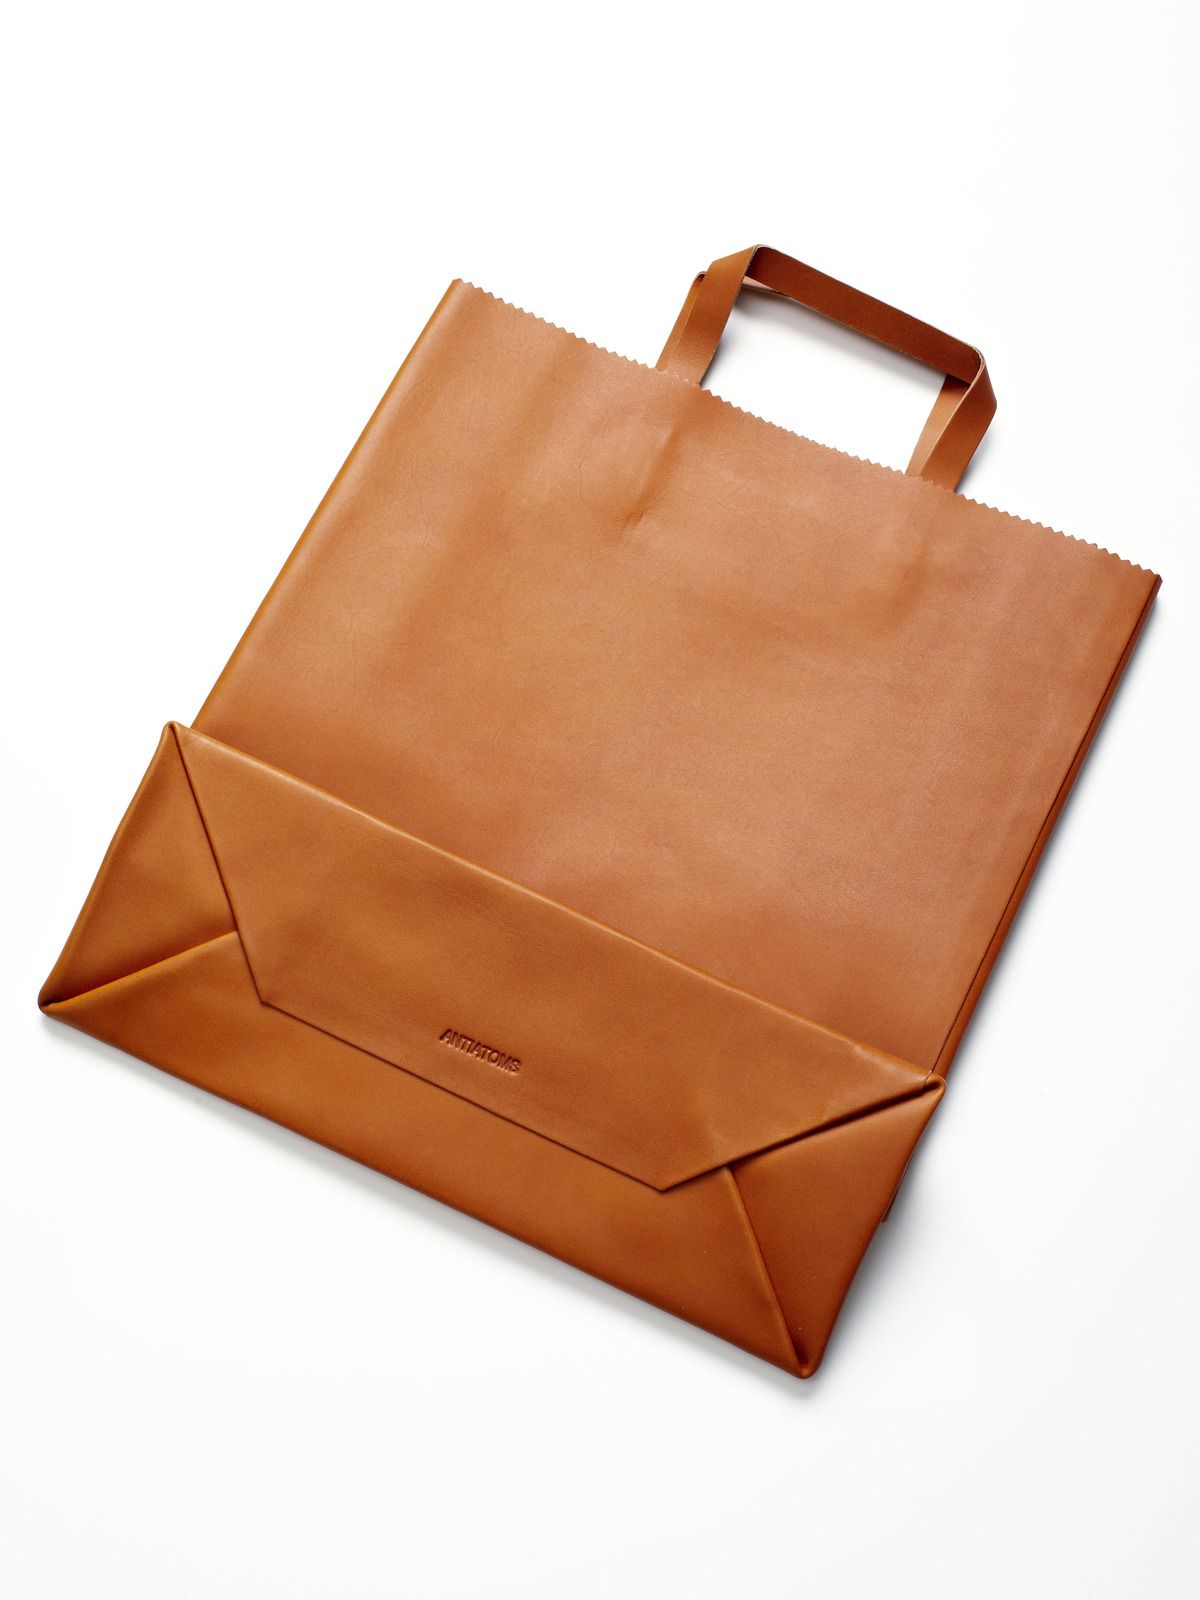 Antiatoms Leather Shopping Bag | take apart a paper bag to create ...